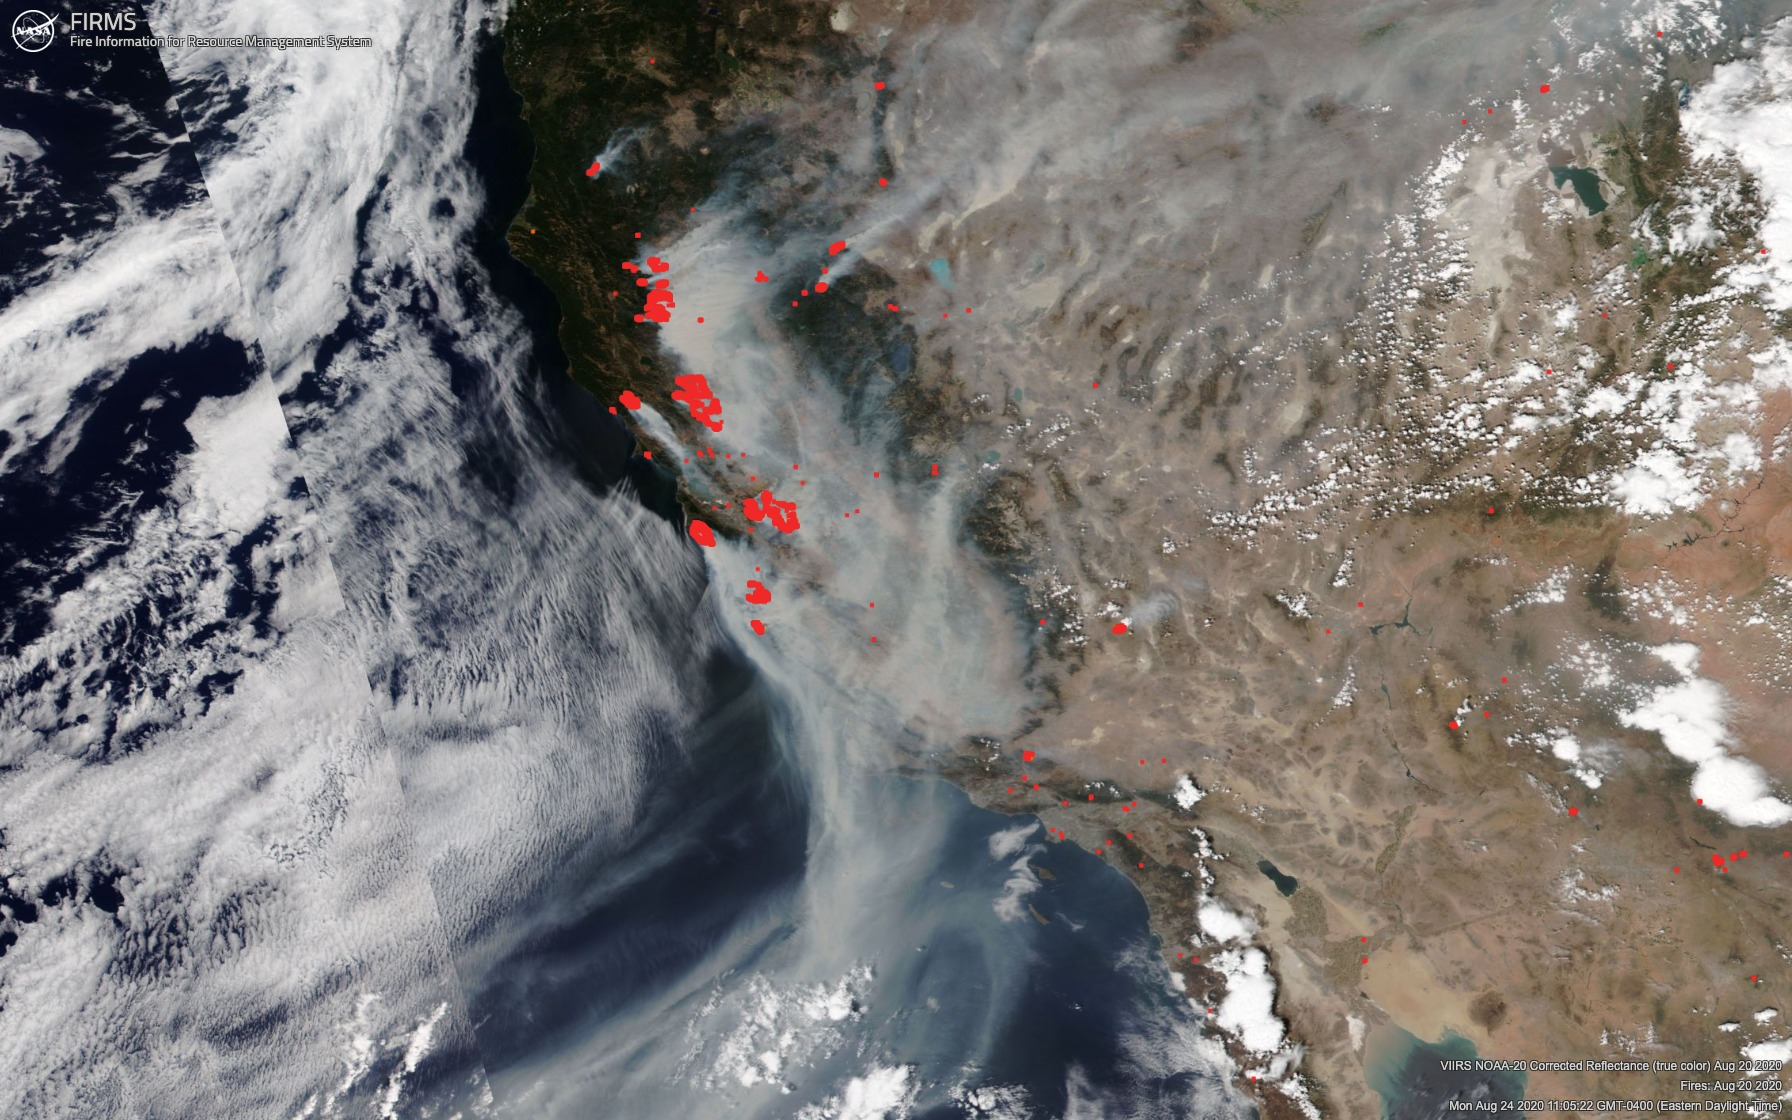 Fire detection data for August 20, from NASA's Fire Information for Resource Management System (FIRMS), shows many fires in California.